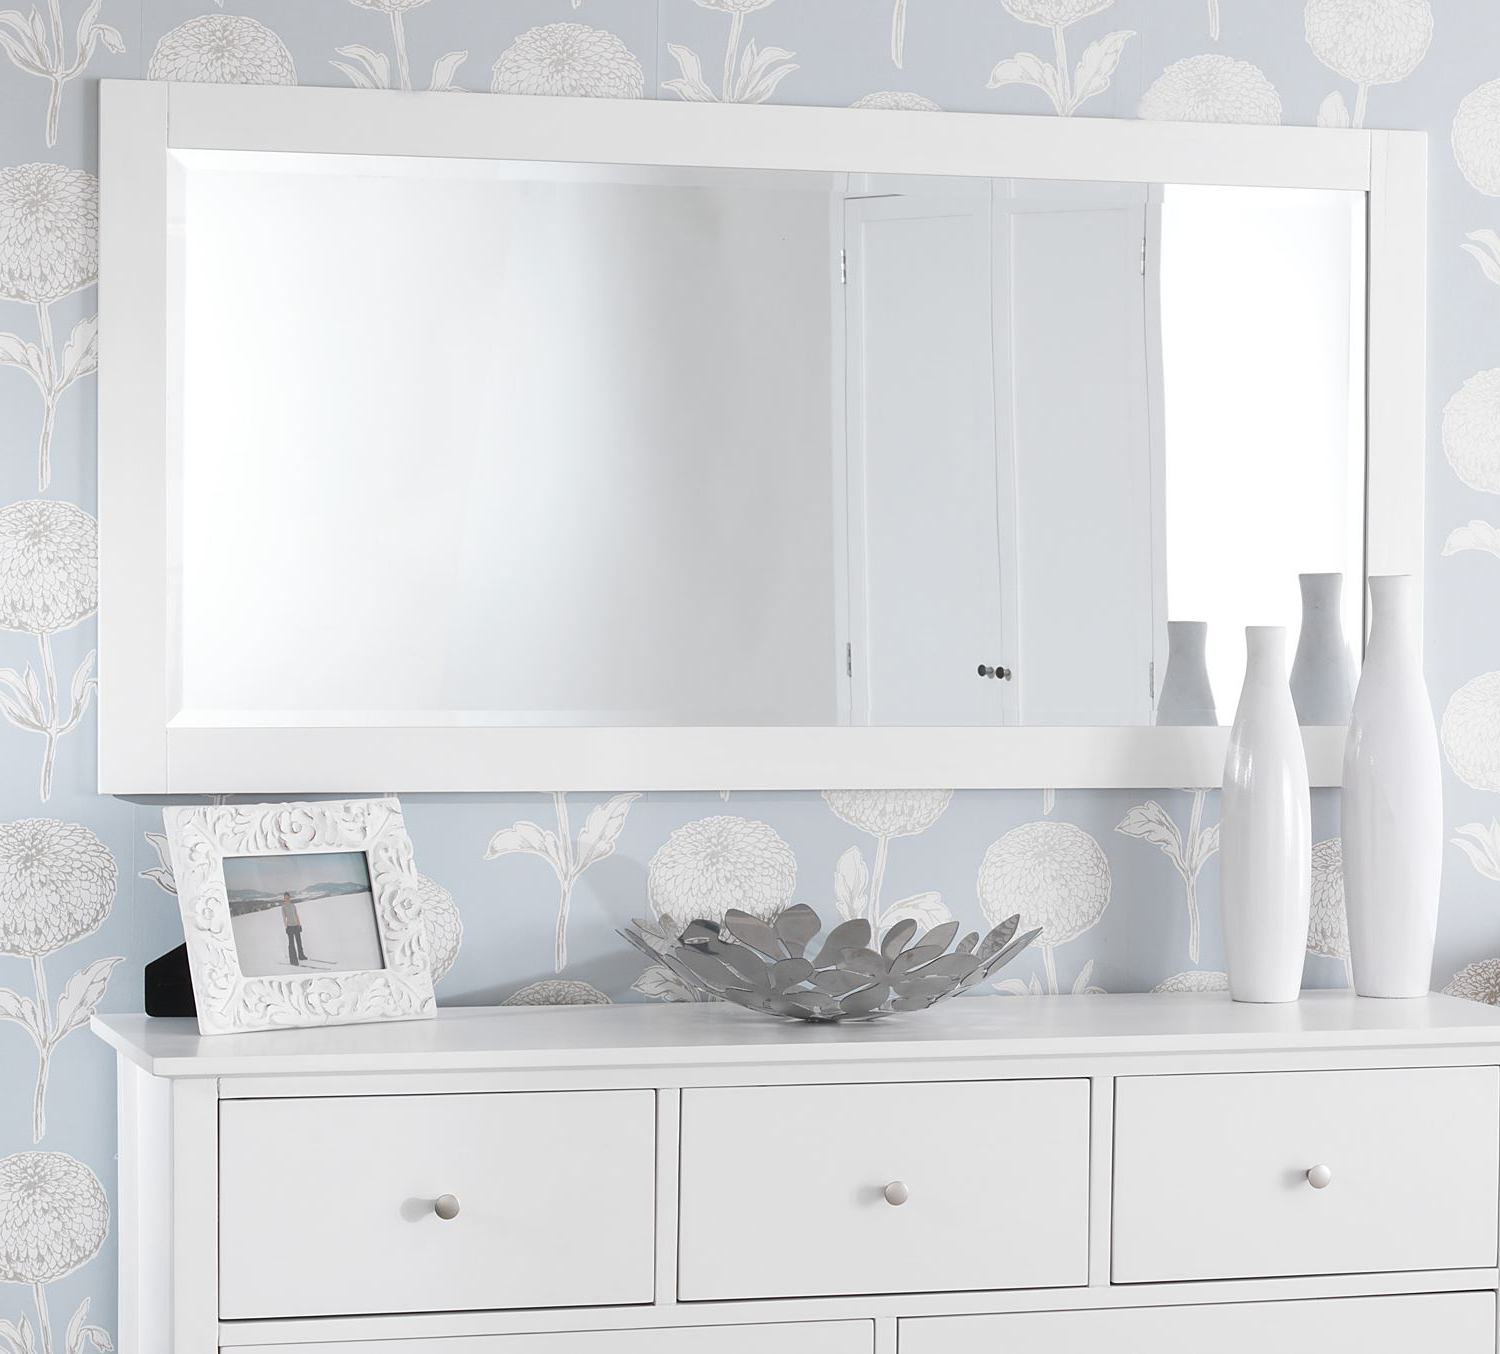 Widely Used Large White Wall Mirrors Inside Details About Edward Hopper Large White Wall Mirror, Large Mirror,140Cm (View 4 of 20)